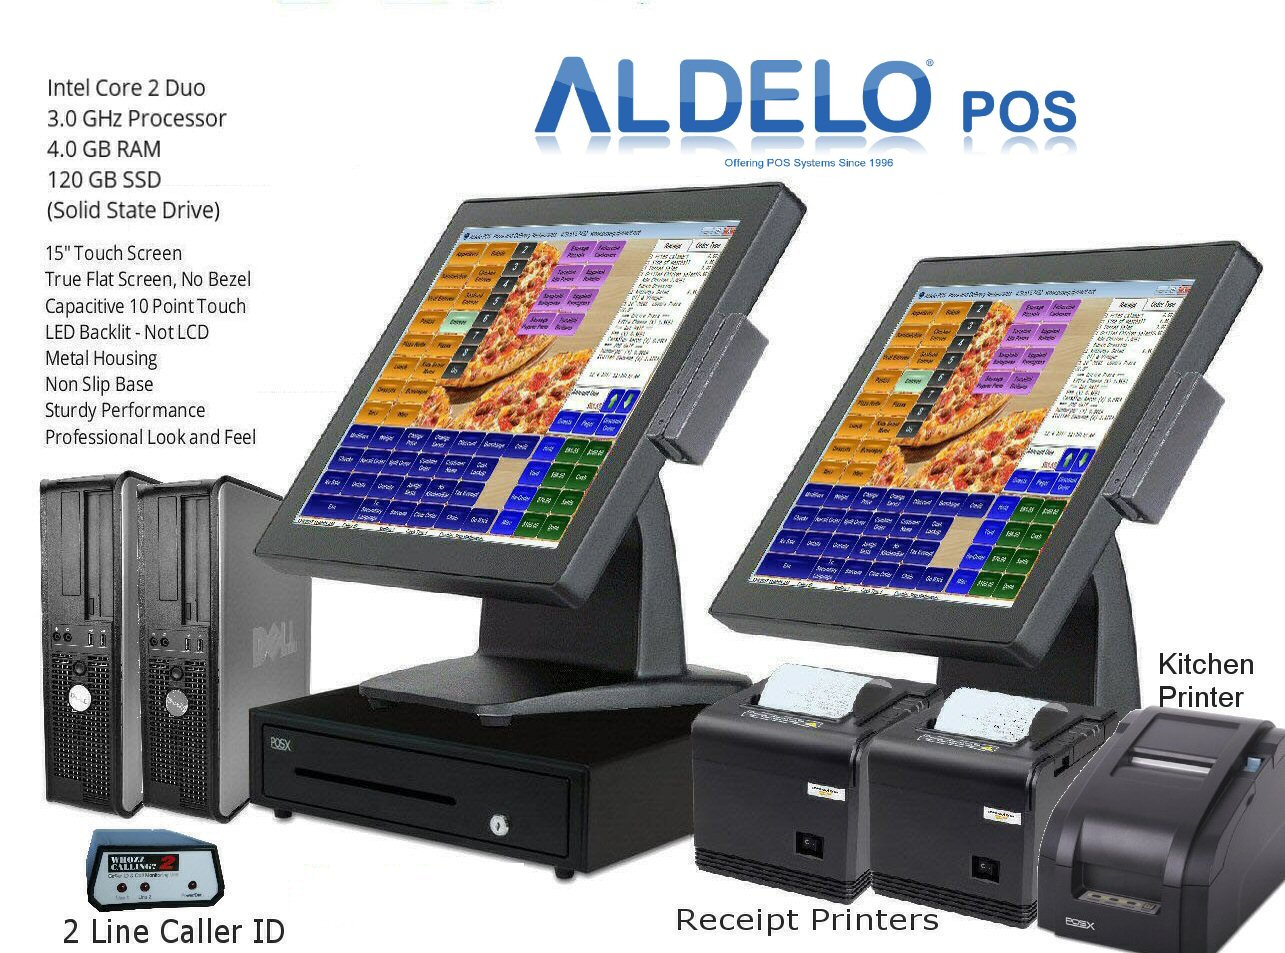 Aldelo Pos Pro Italian Pizza Windows 10 Pos System Kitchen Printer